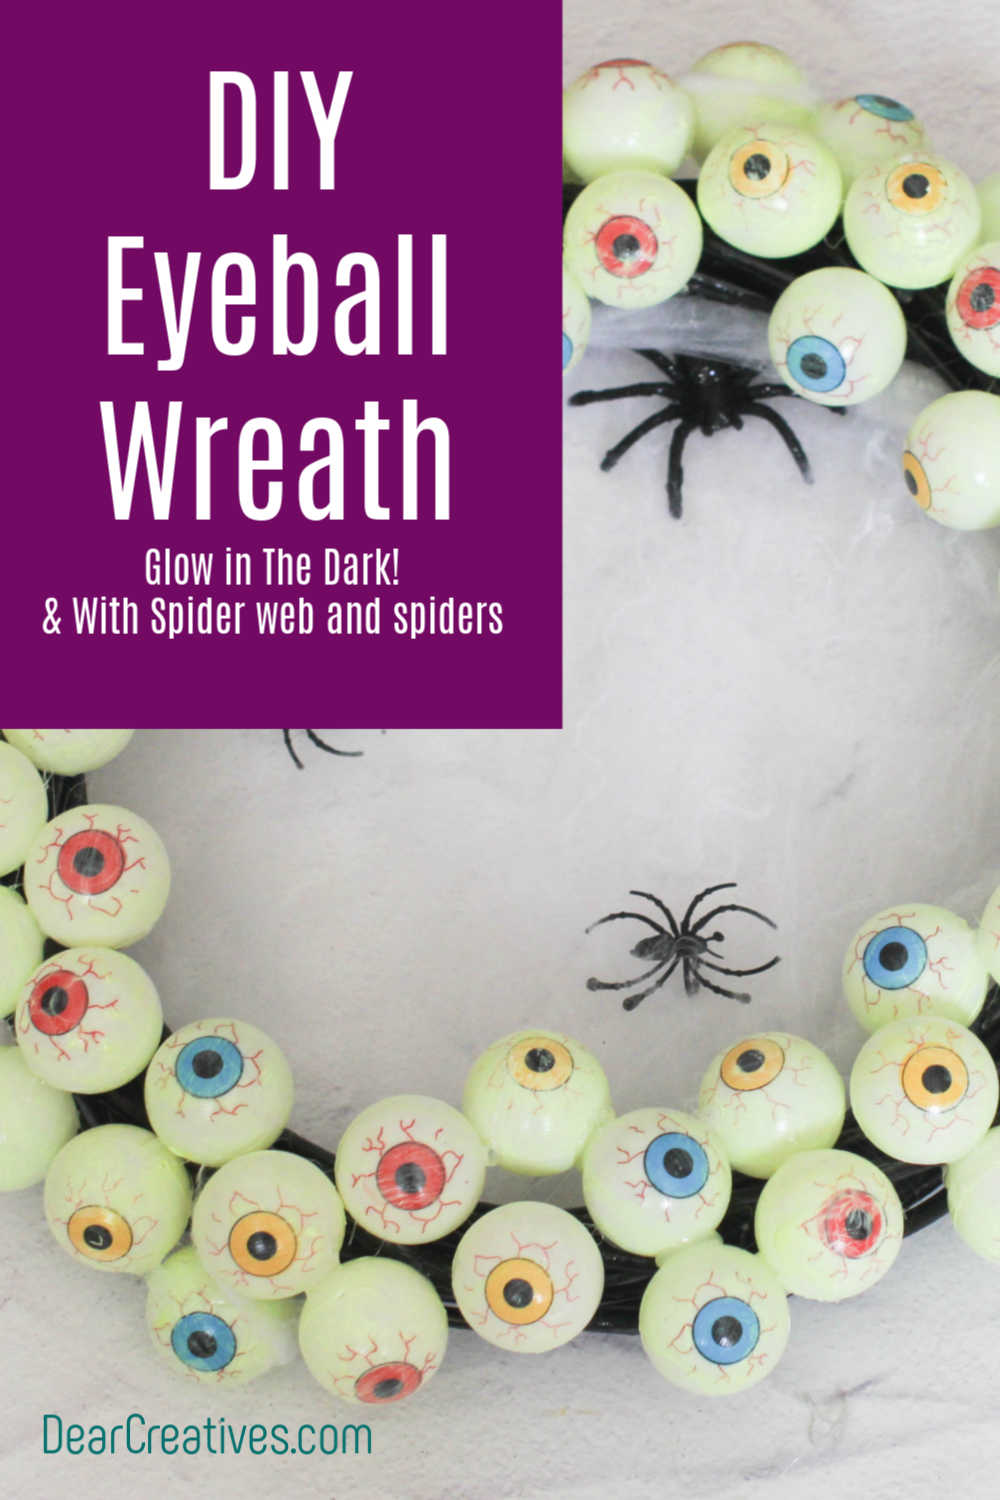 DIY Eyeball Wreath – Easy To Make And Hang